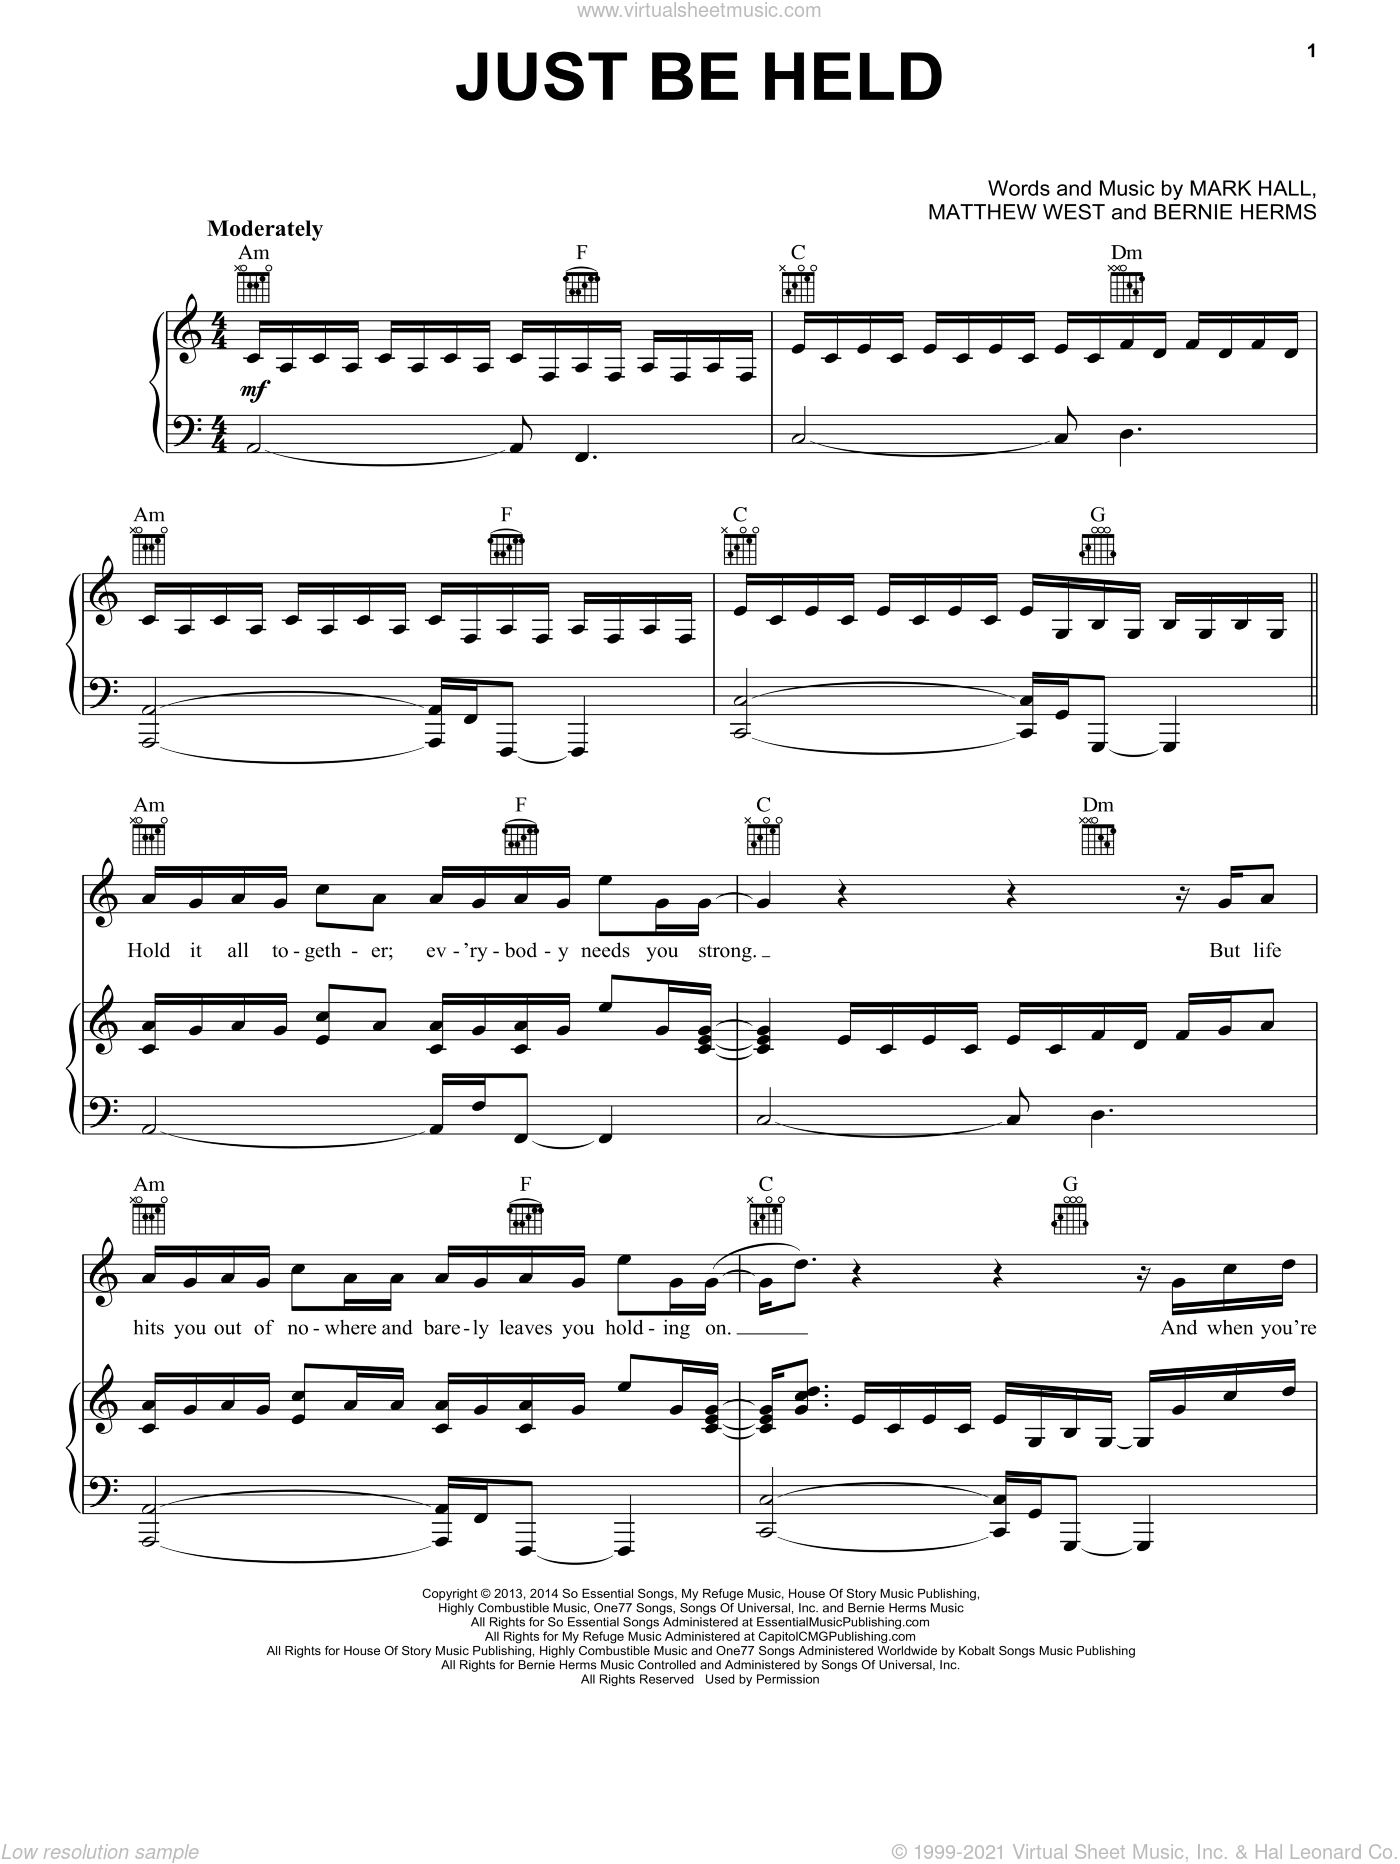 Just Be Held sheet music for voice, piano or guitar by Matthew West, Bernie Herms, Casting Crowns and Mark Hall. Score Image Preview.